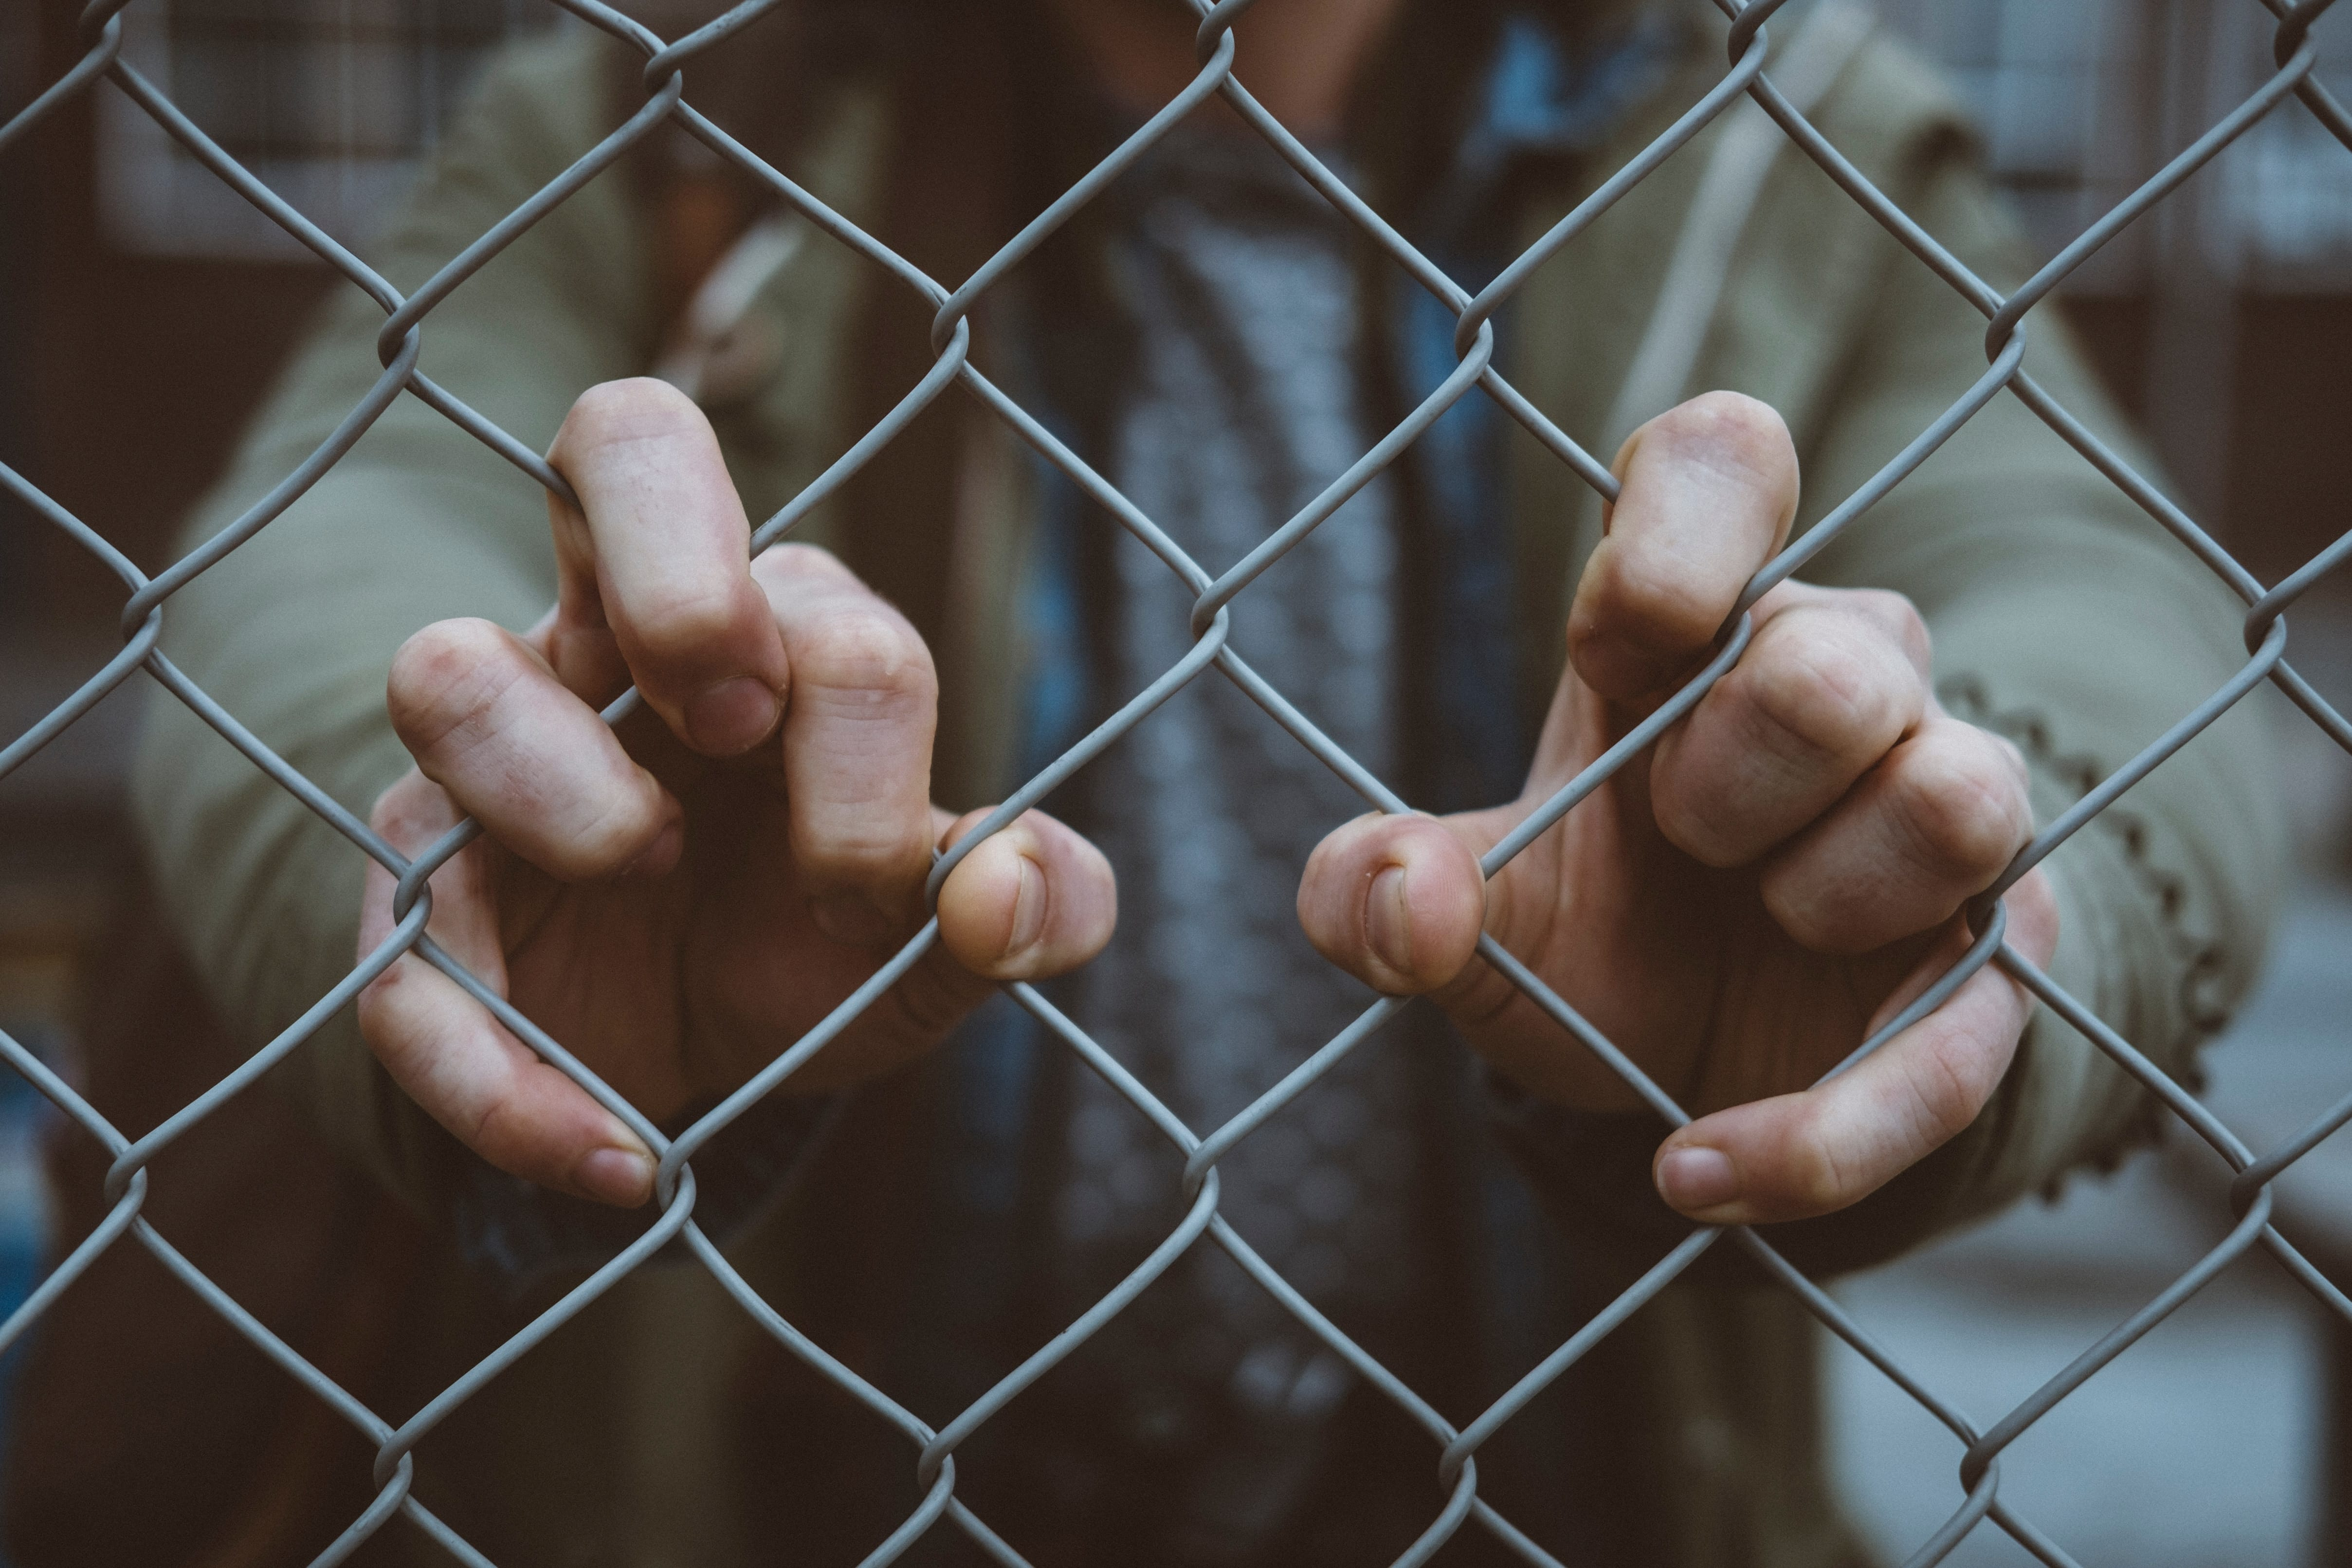 Person behind mesh fence; image by Mitch Lensink, via Unsplash.com.